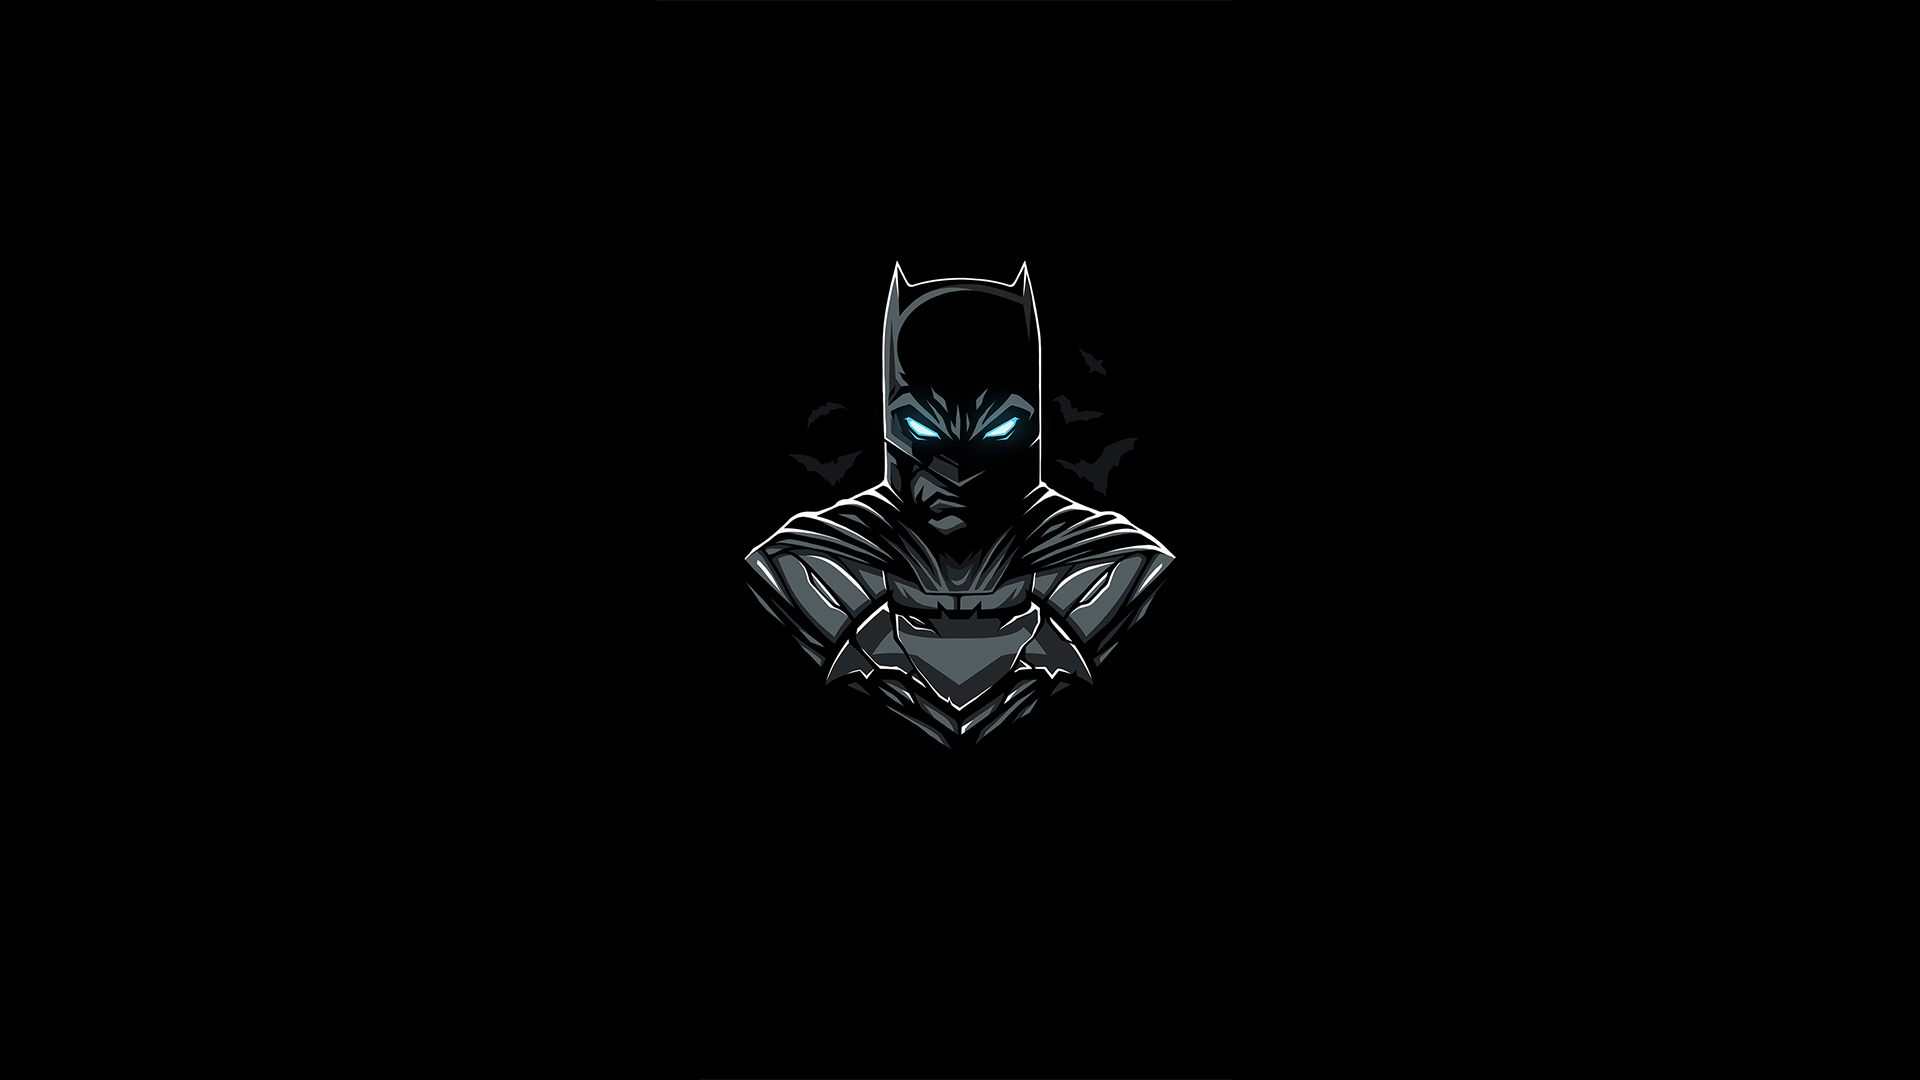 Batman Amoled Hd Superheroes 4k Wallpapers Images